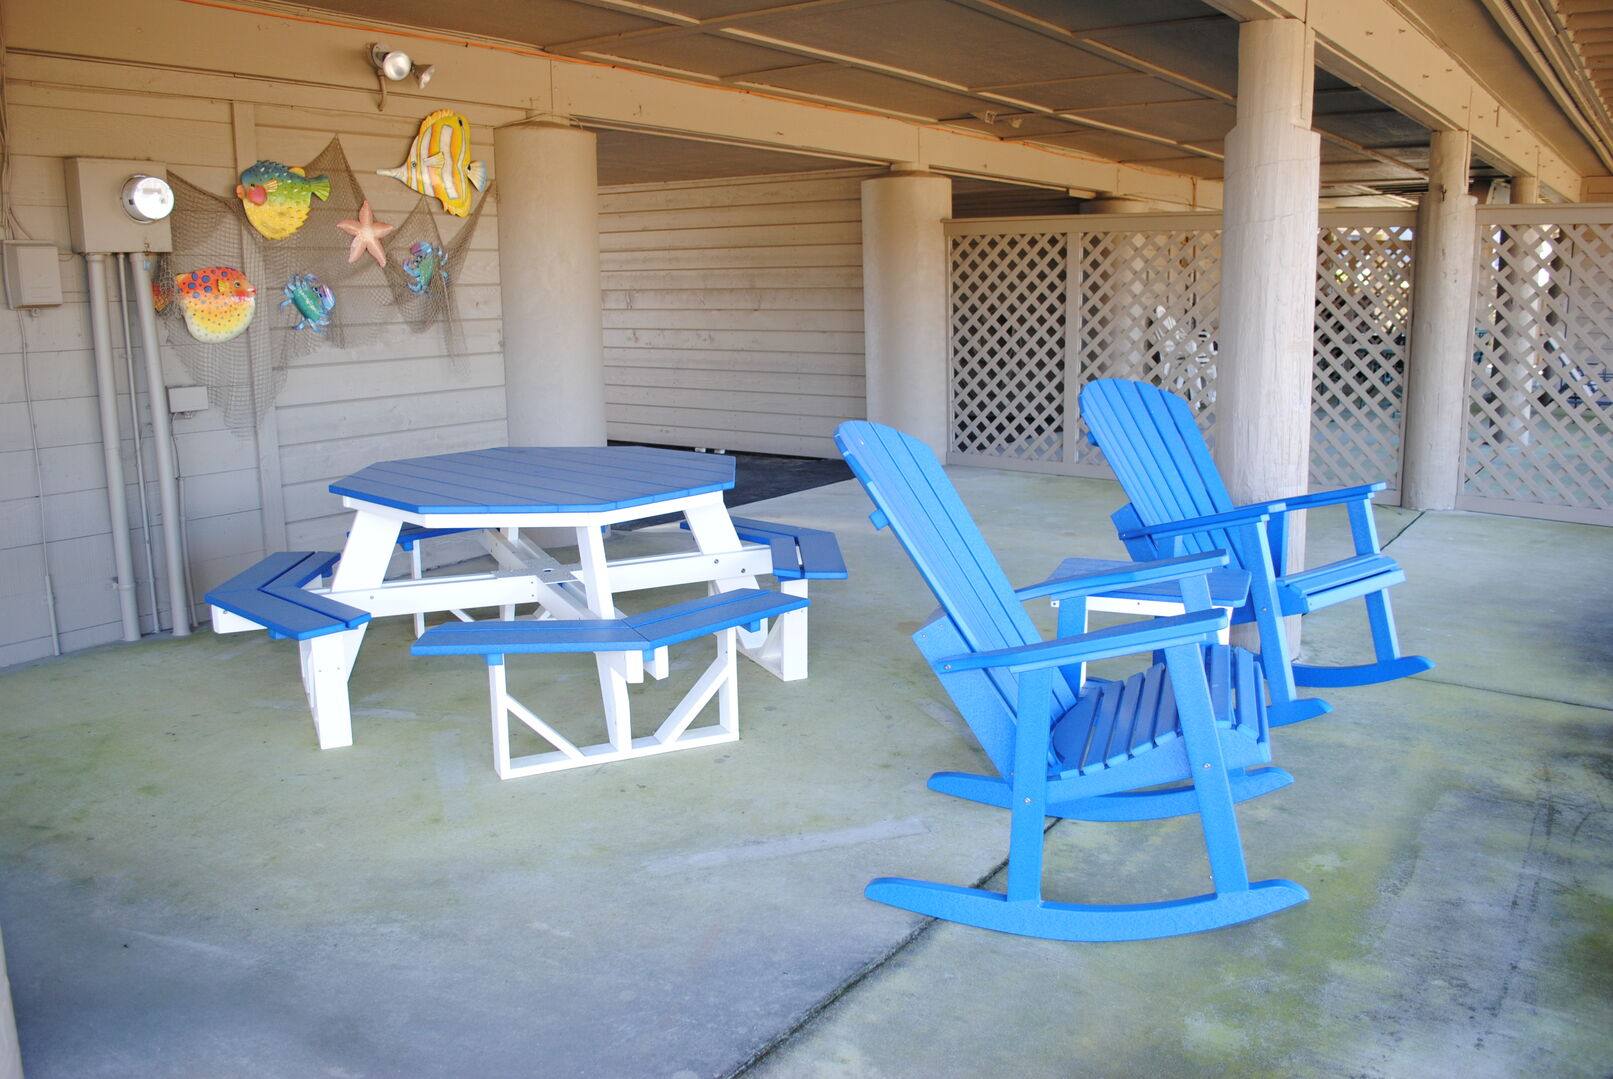 Ground level seating area with picnic table